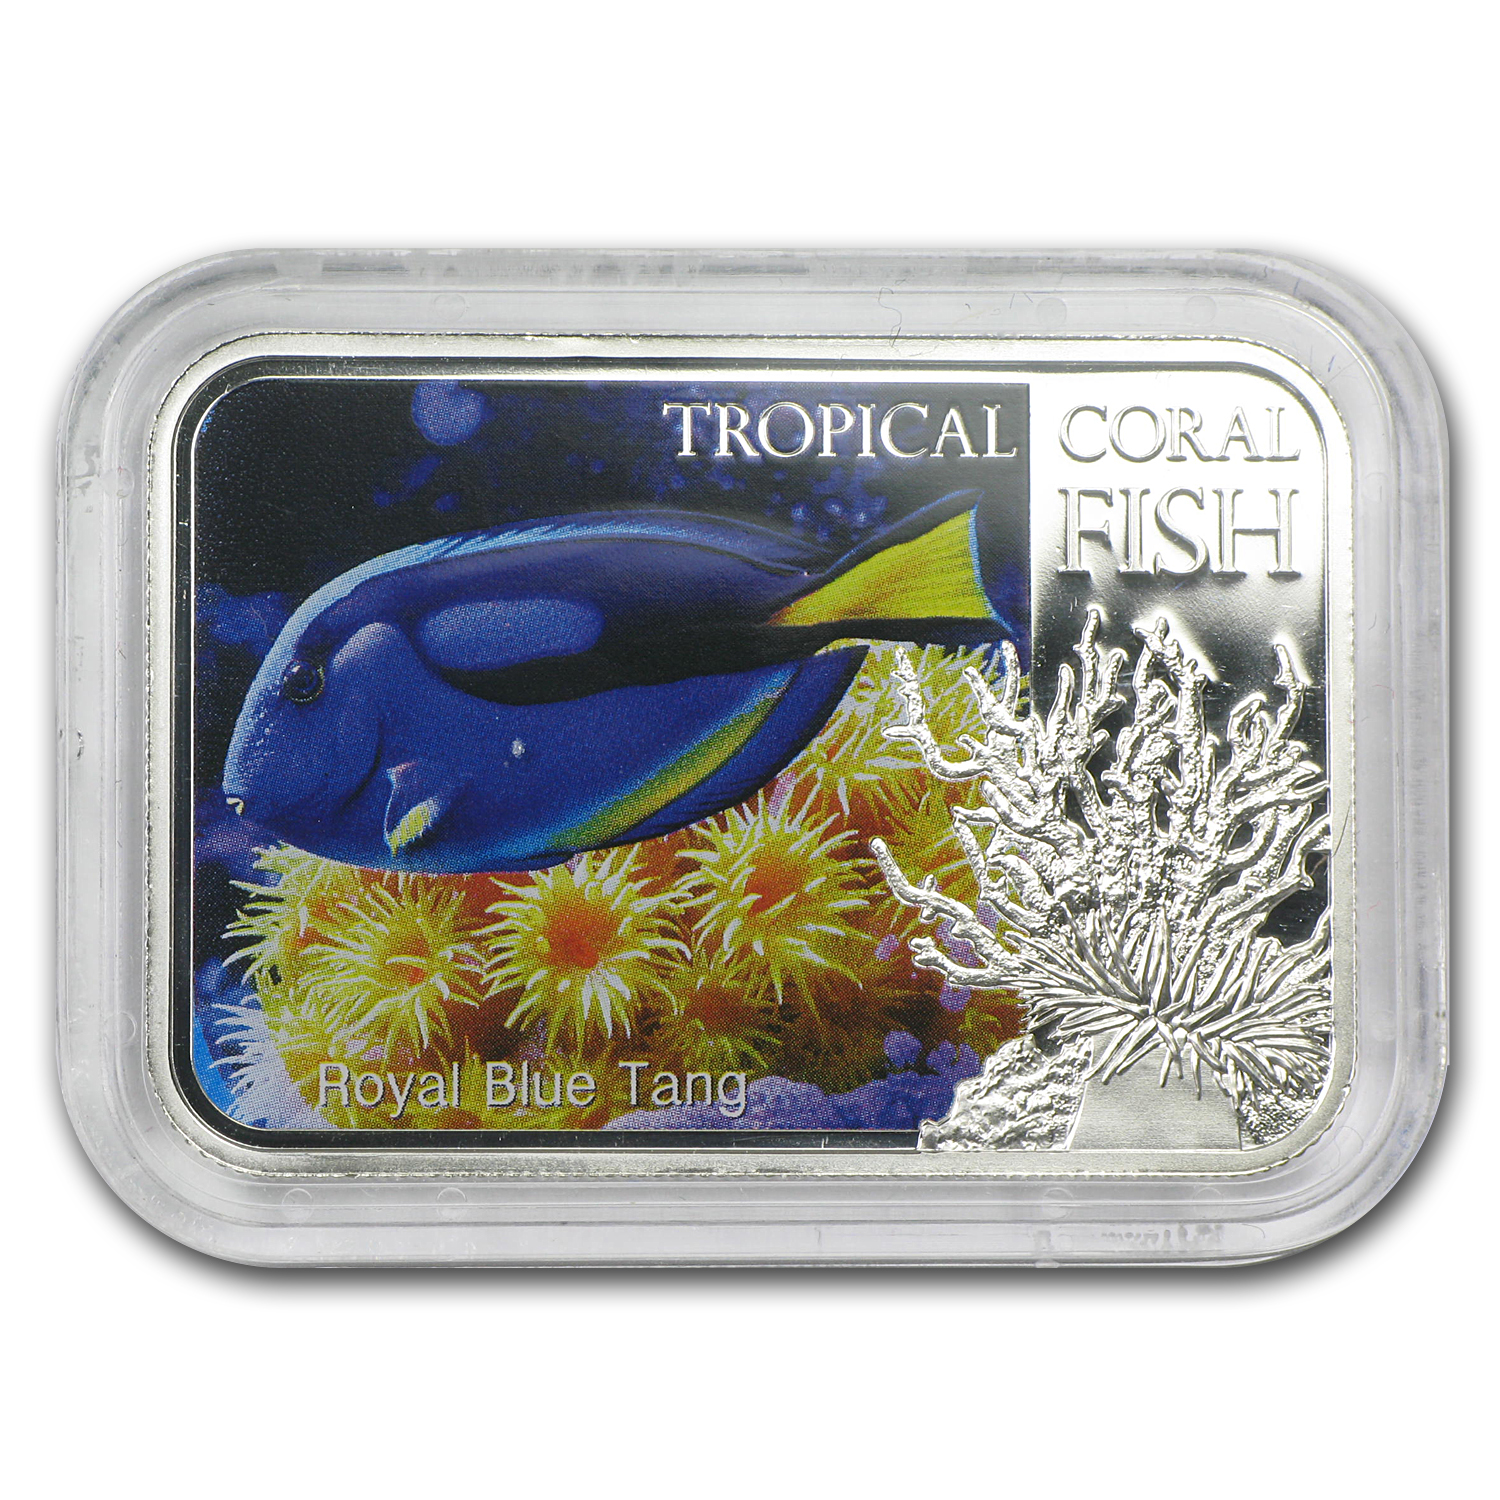 2013 1 oz Silver Niue Tropical Coral Fish - Royal Blue Tang